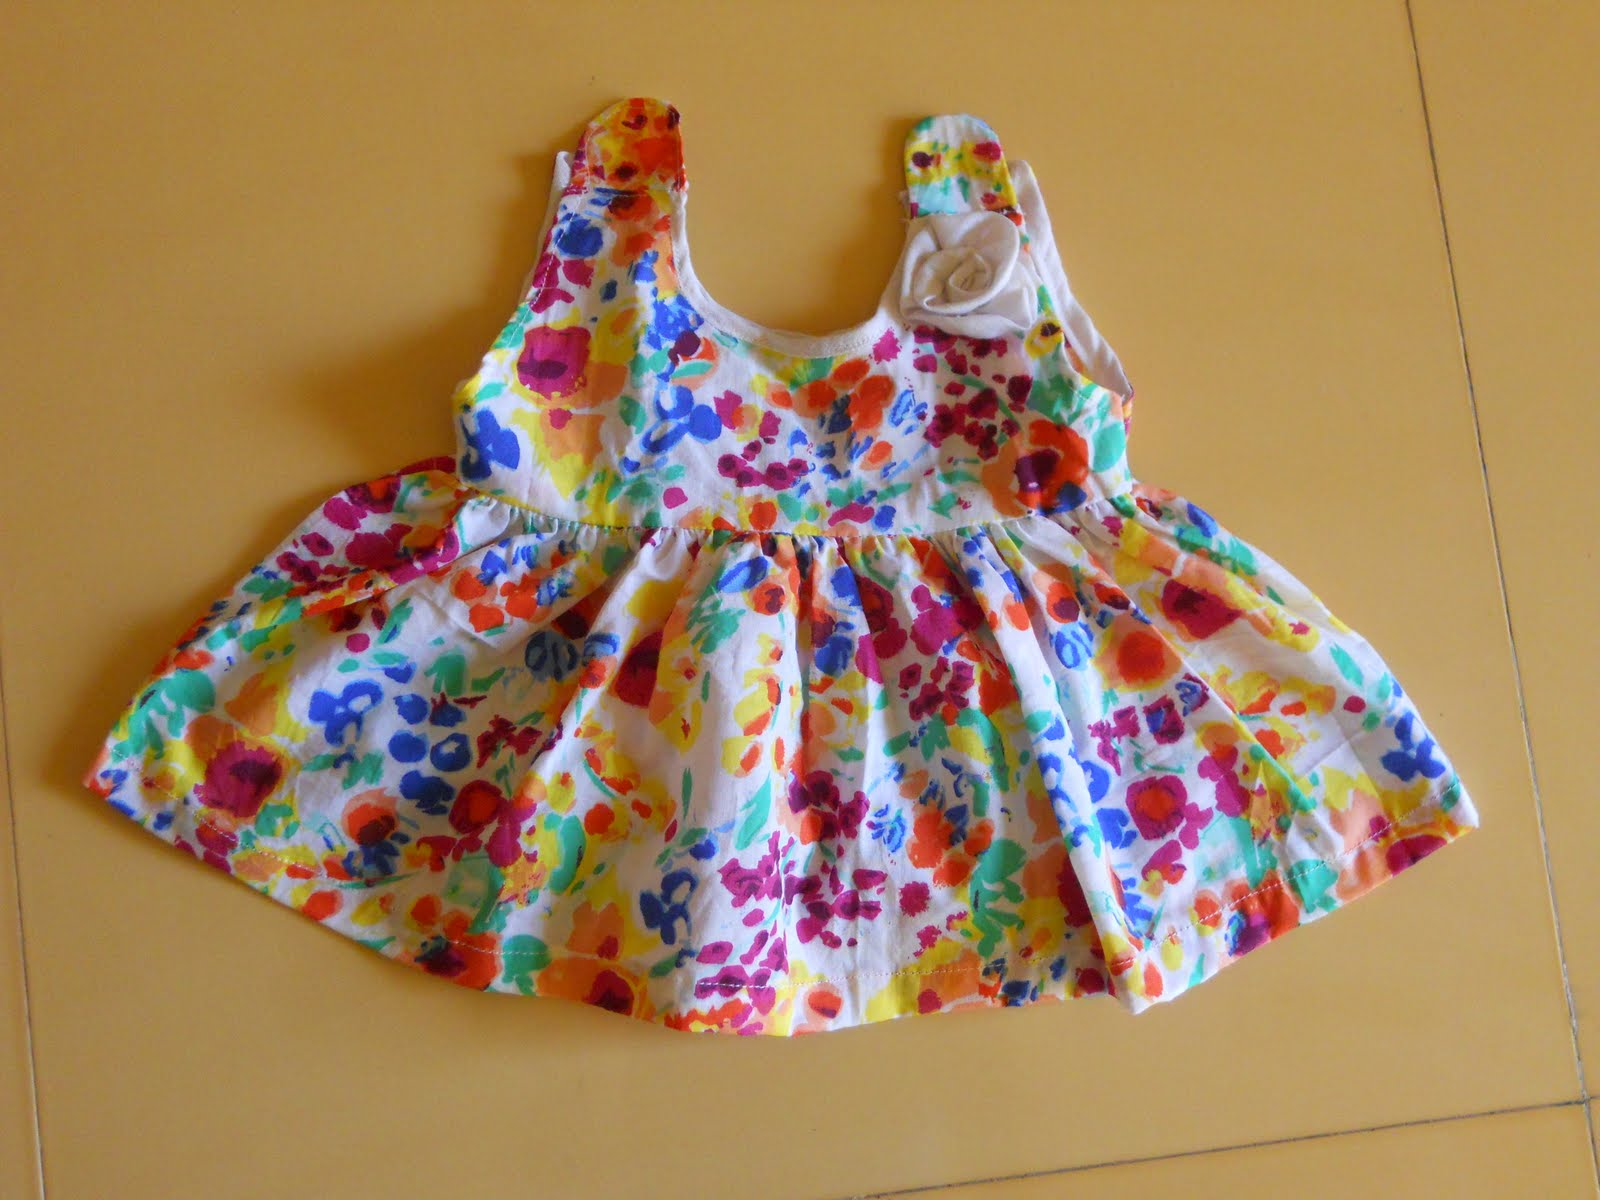 Baby Girls Frocks http://sewingathome.blogspot.com/2011/05/cute-baby-frocks.html